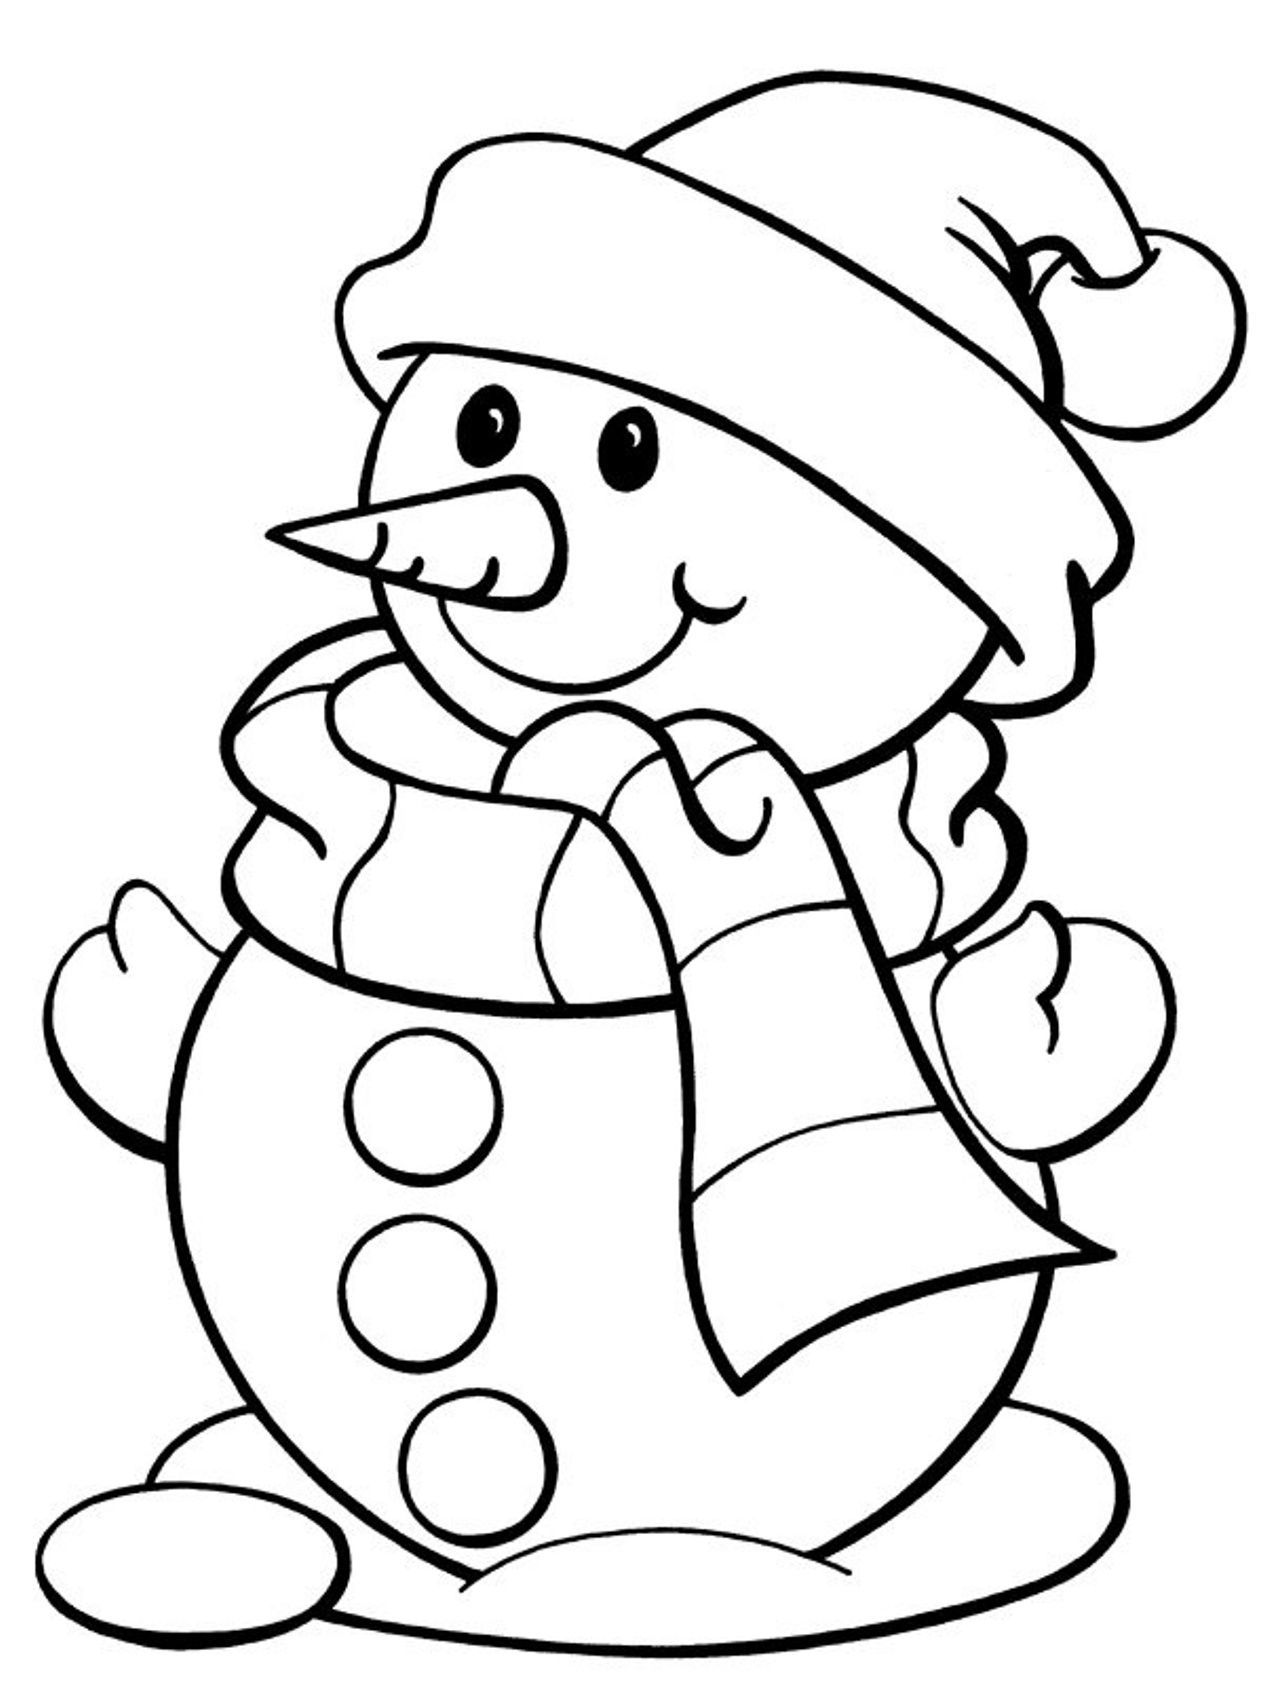 Pin By Marzena Glowacka Zajac On Templates Snowman Coloring Pages Christmas Coloring Sheets Christmas Coloring Pages